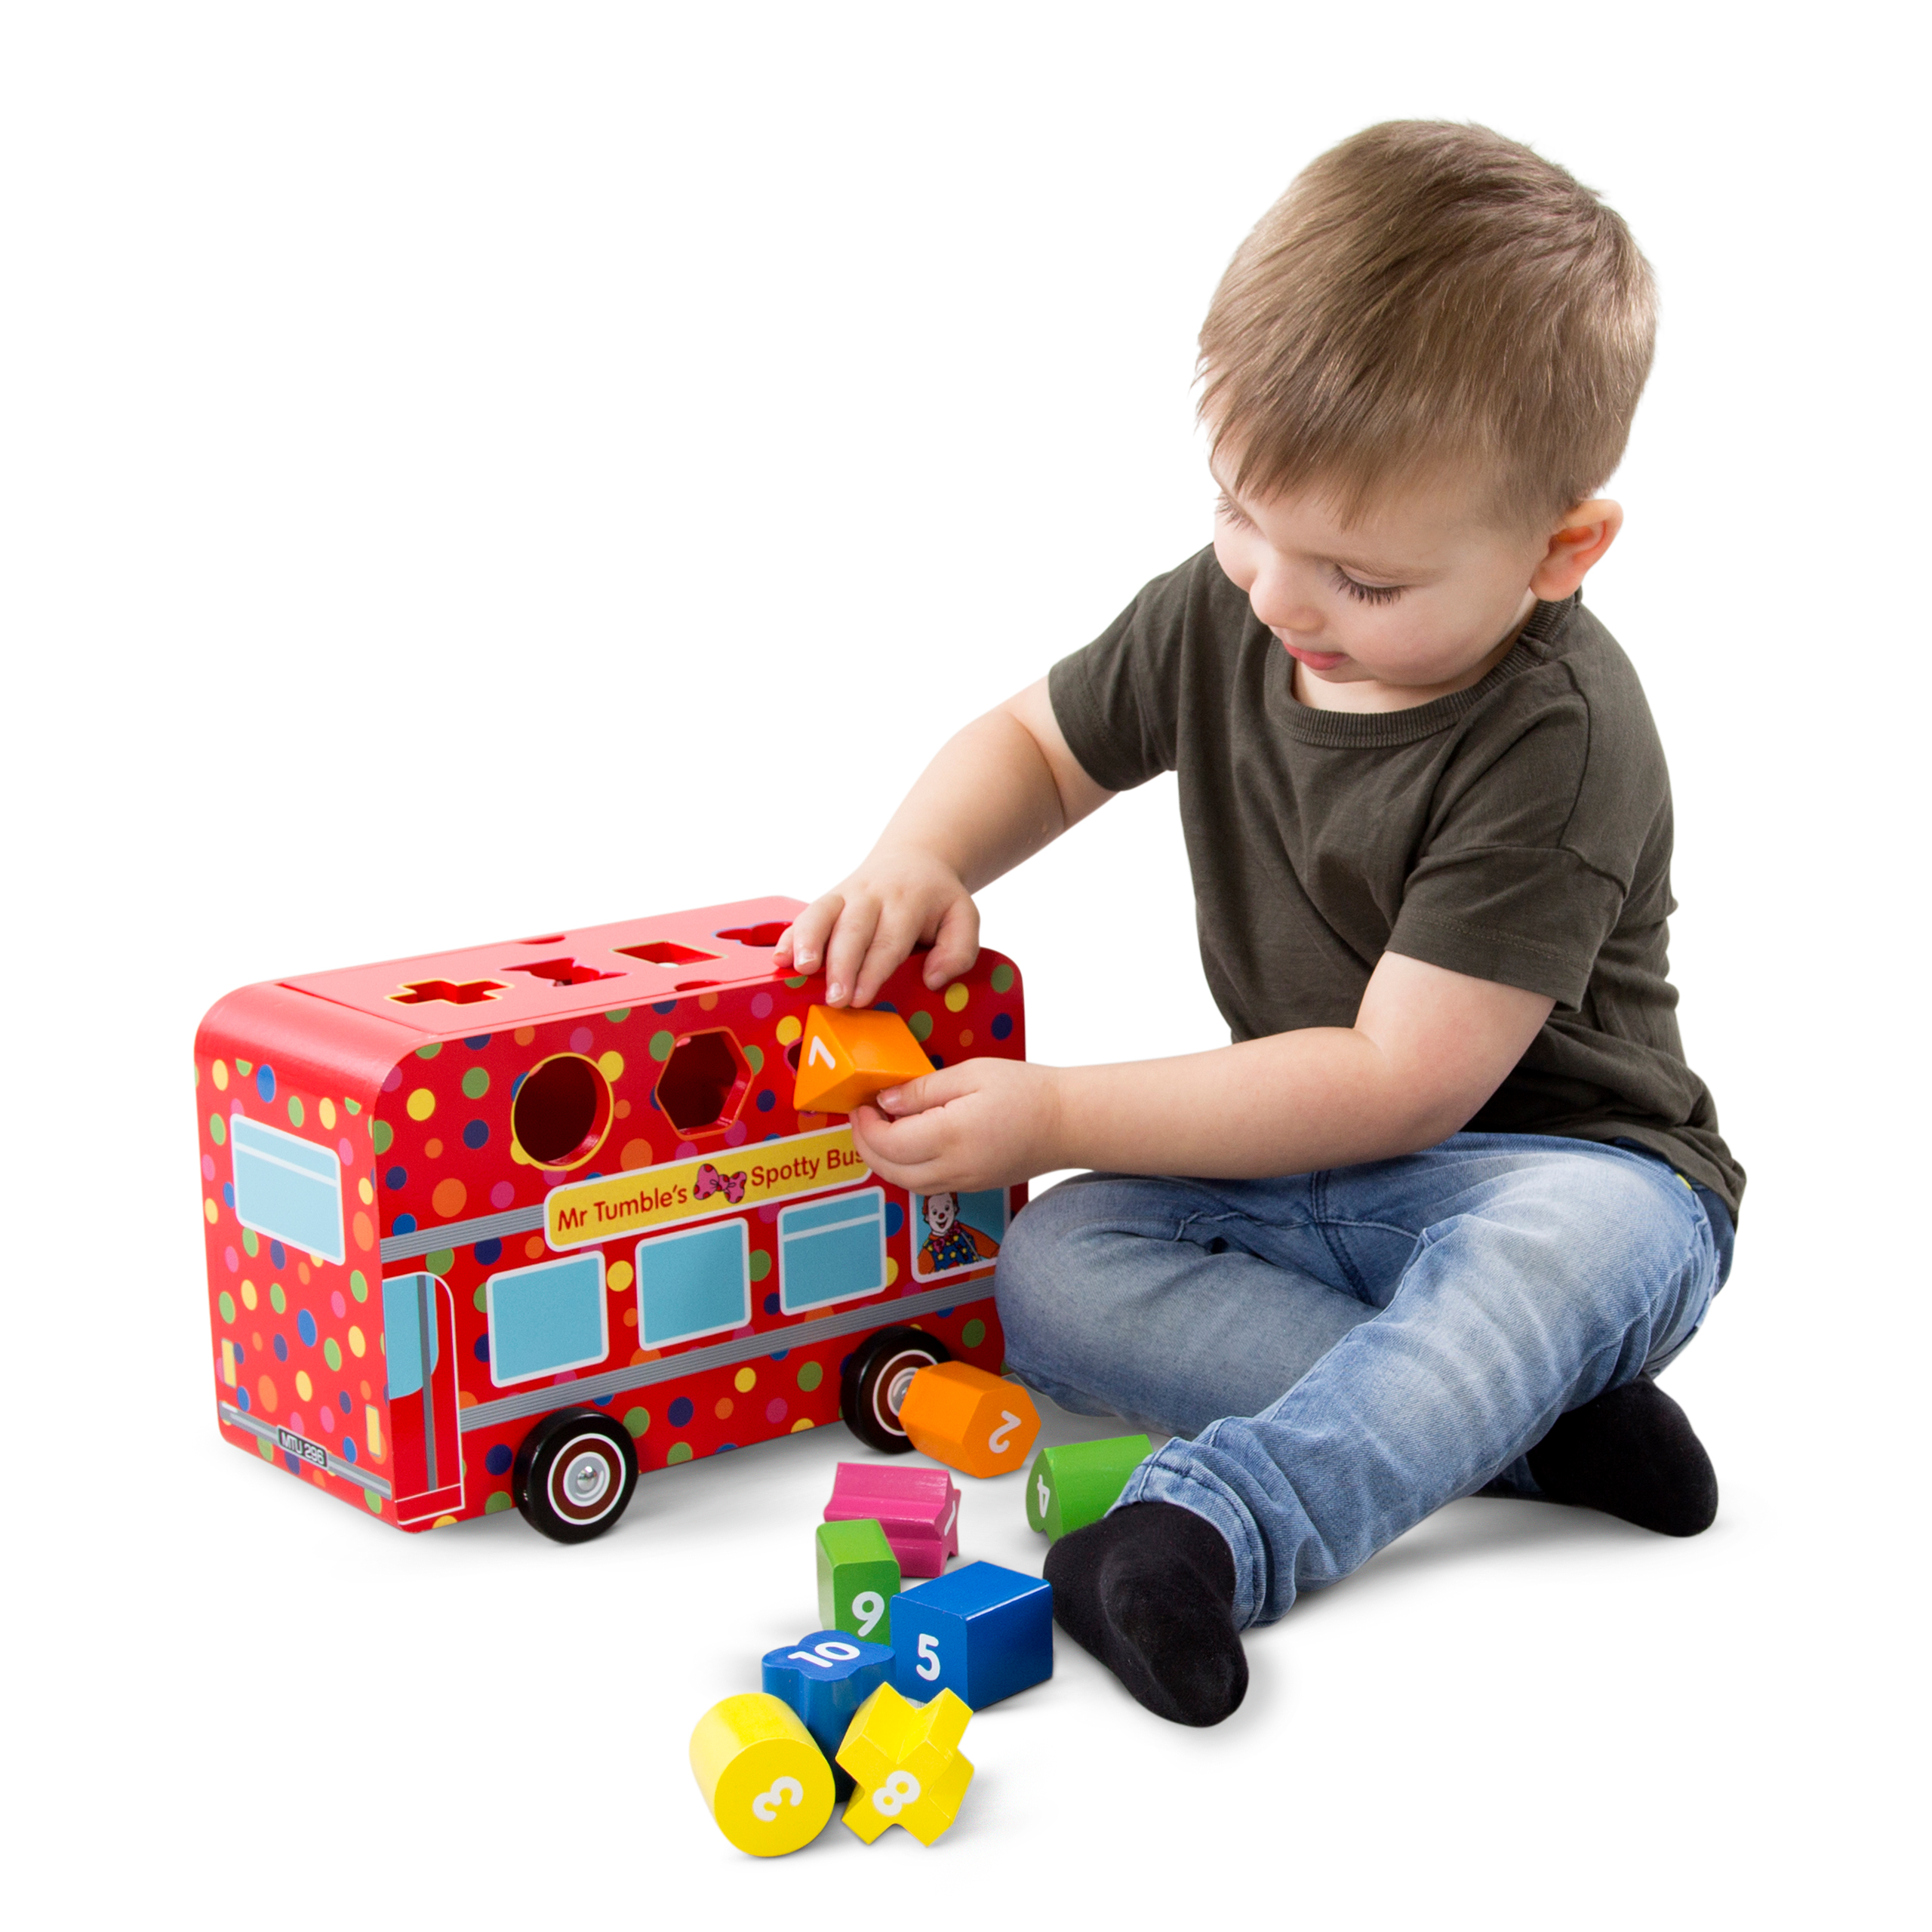 Mr Tumble Wooden Shape Sorting Bus, worth £19.99